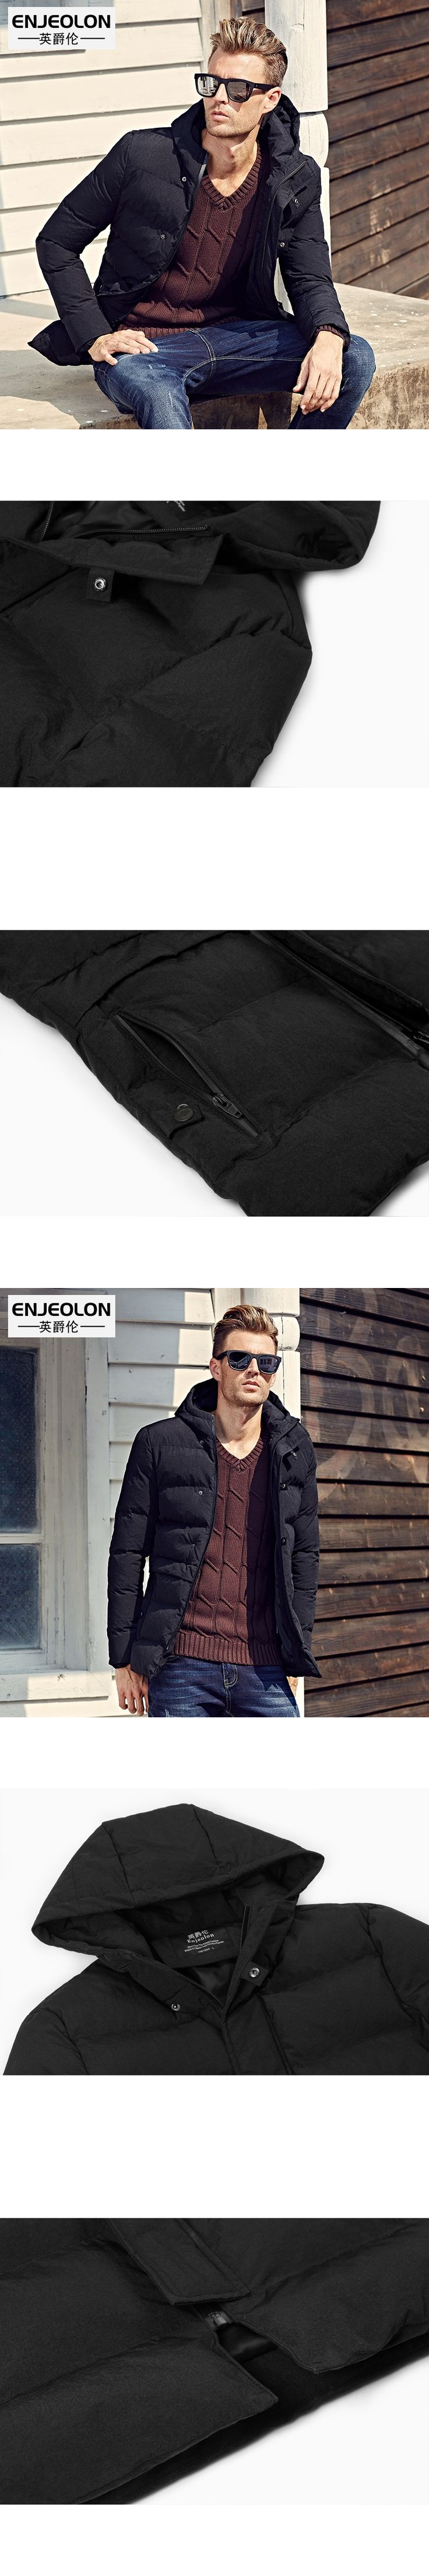 Enjeolon brand 2017 Winter Cotton Padded Hooded Jacket Men,Waterproof Parka Men Clothing Thick Quilted Coat Mens Hoodies MY0286